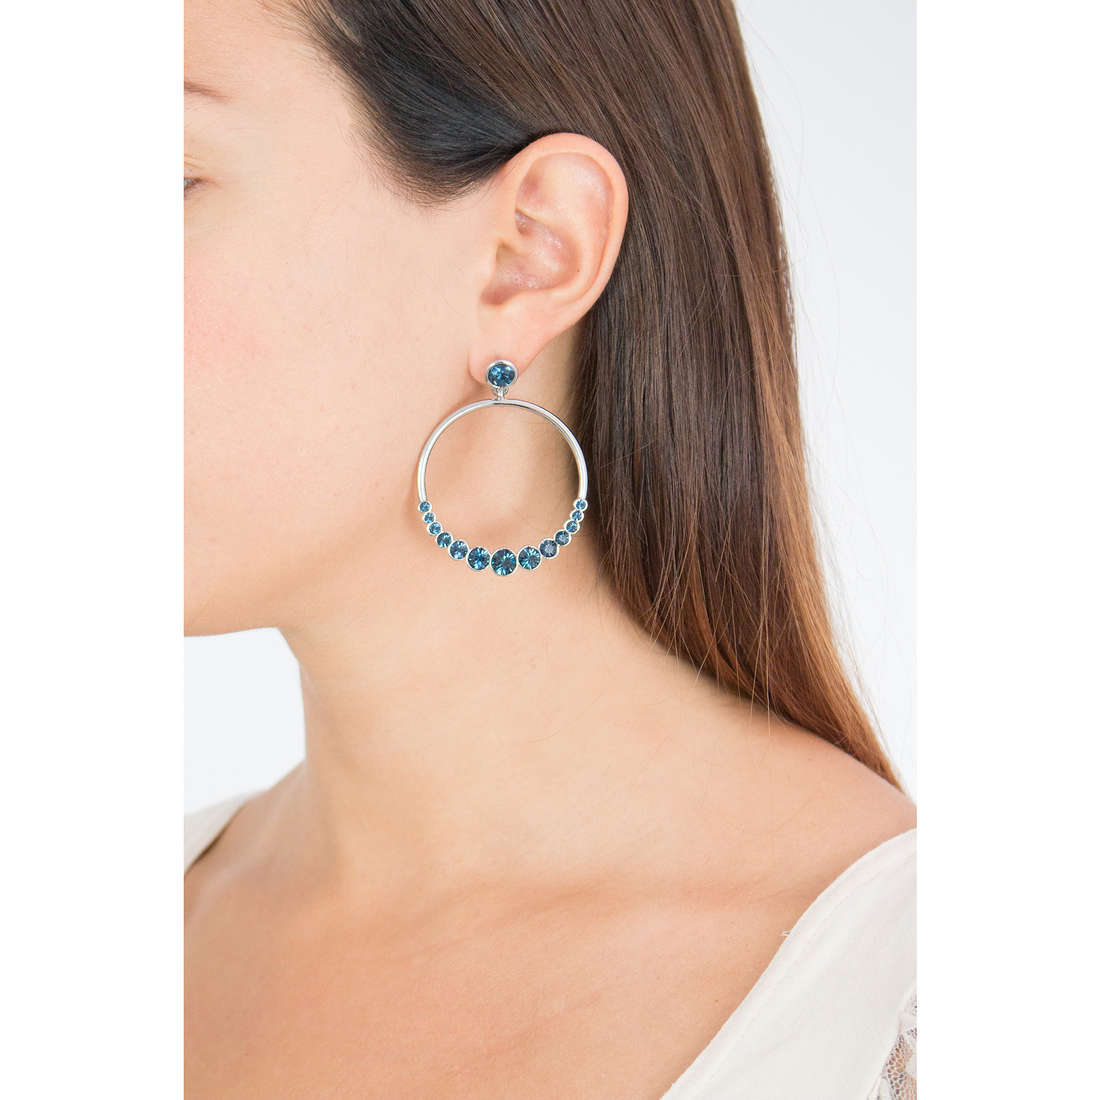 Luca Barra earrings Thelma woman LBOK738 photo wearing